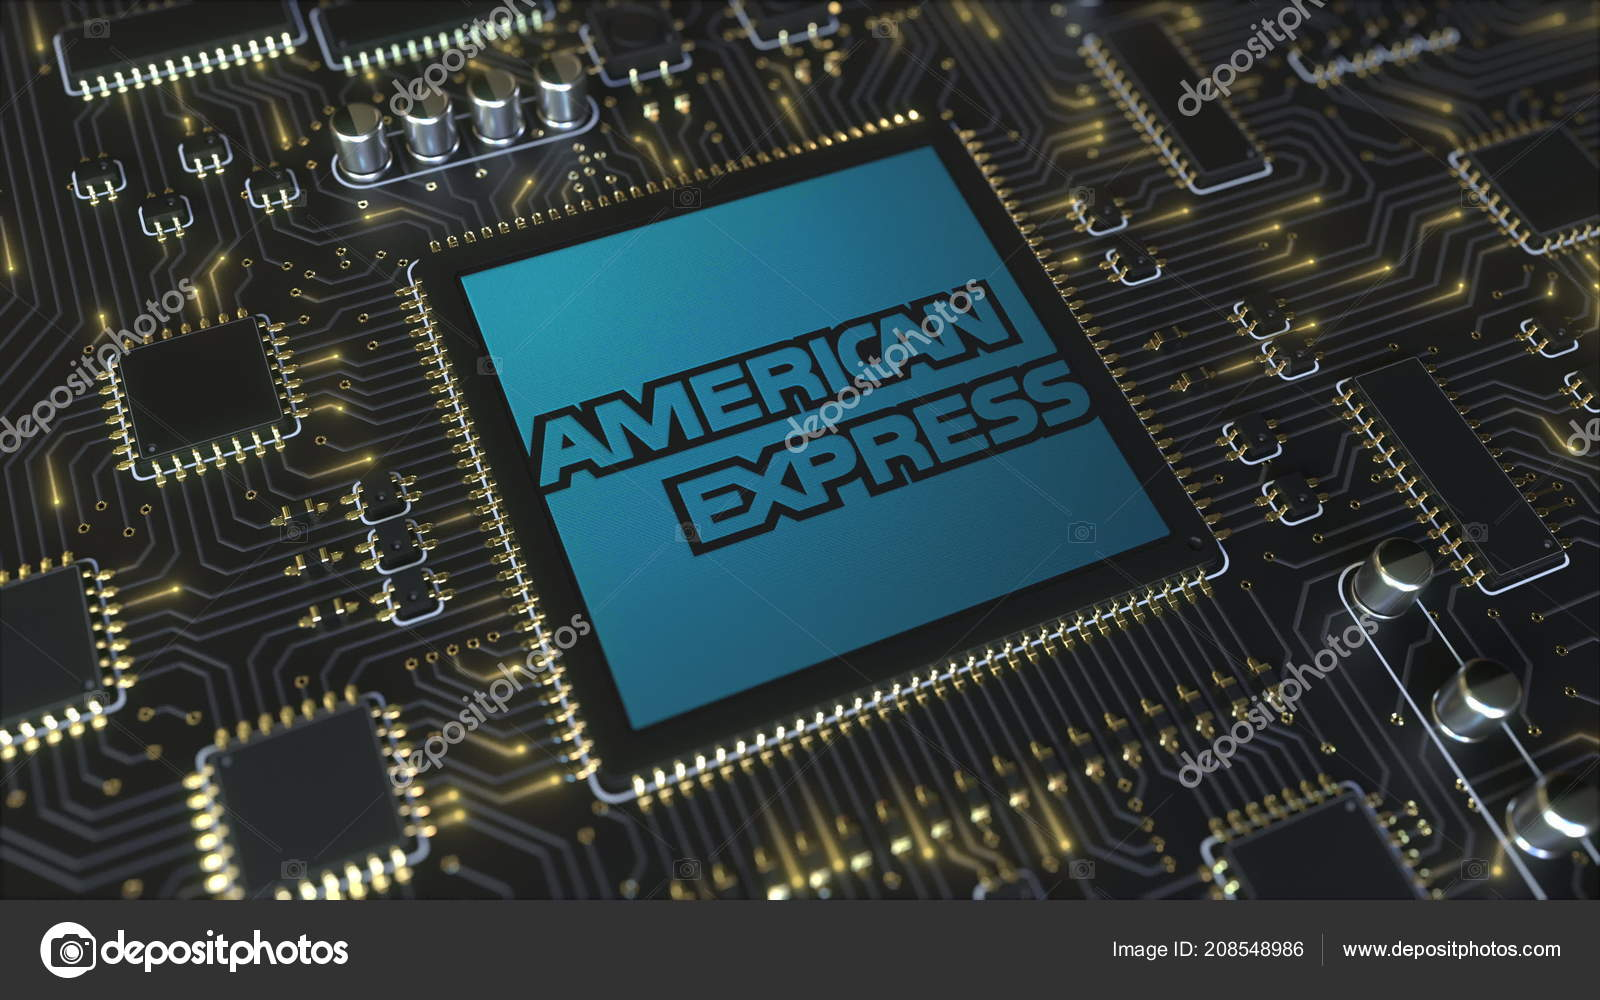 Computer printed circuit board or PCB with American Express